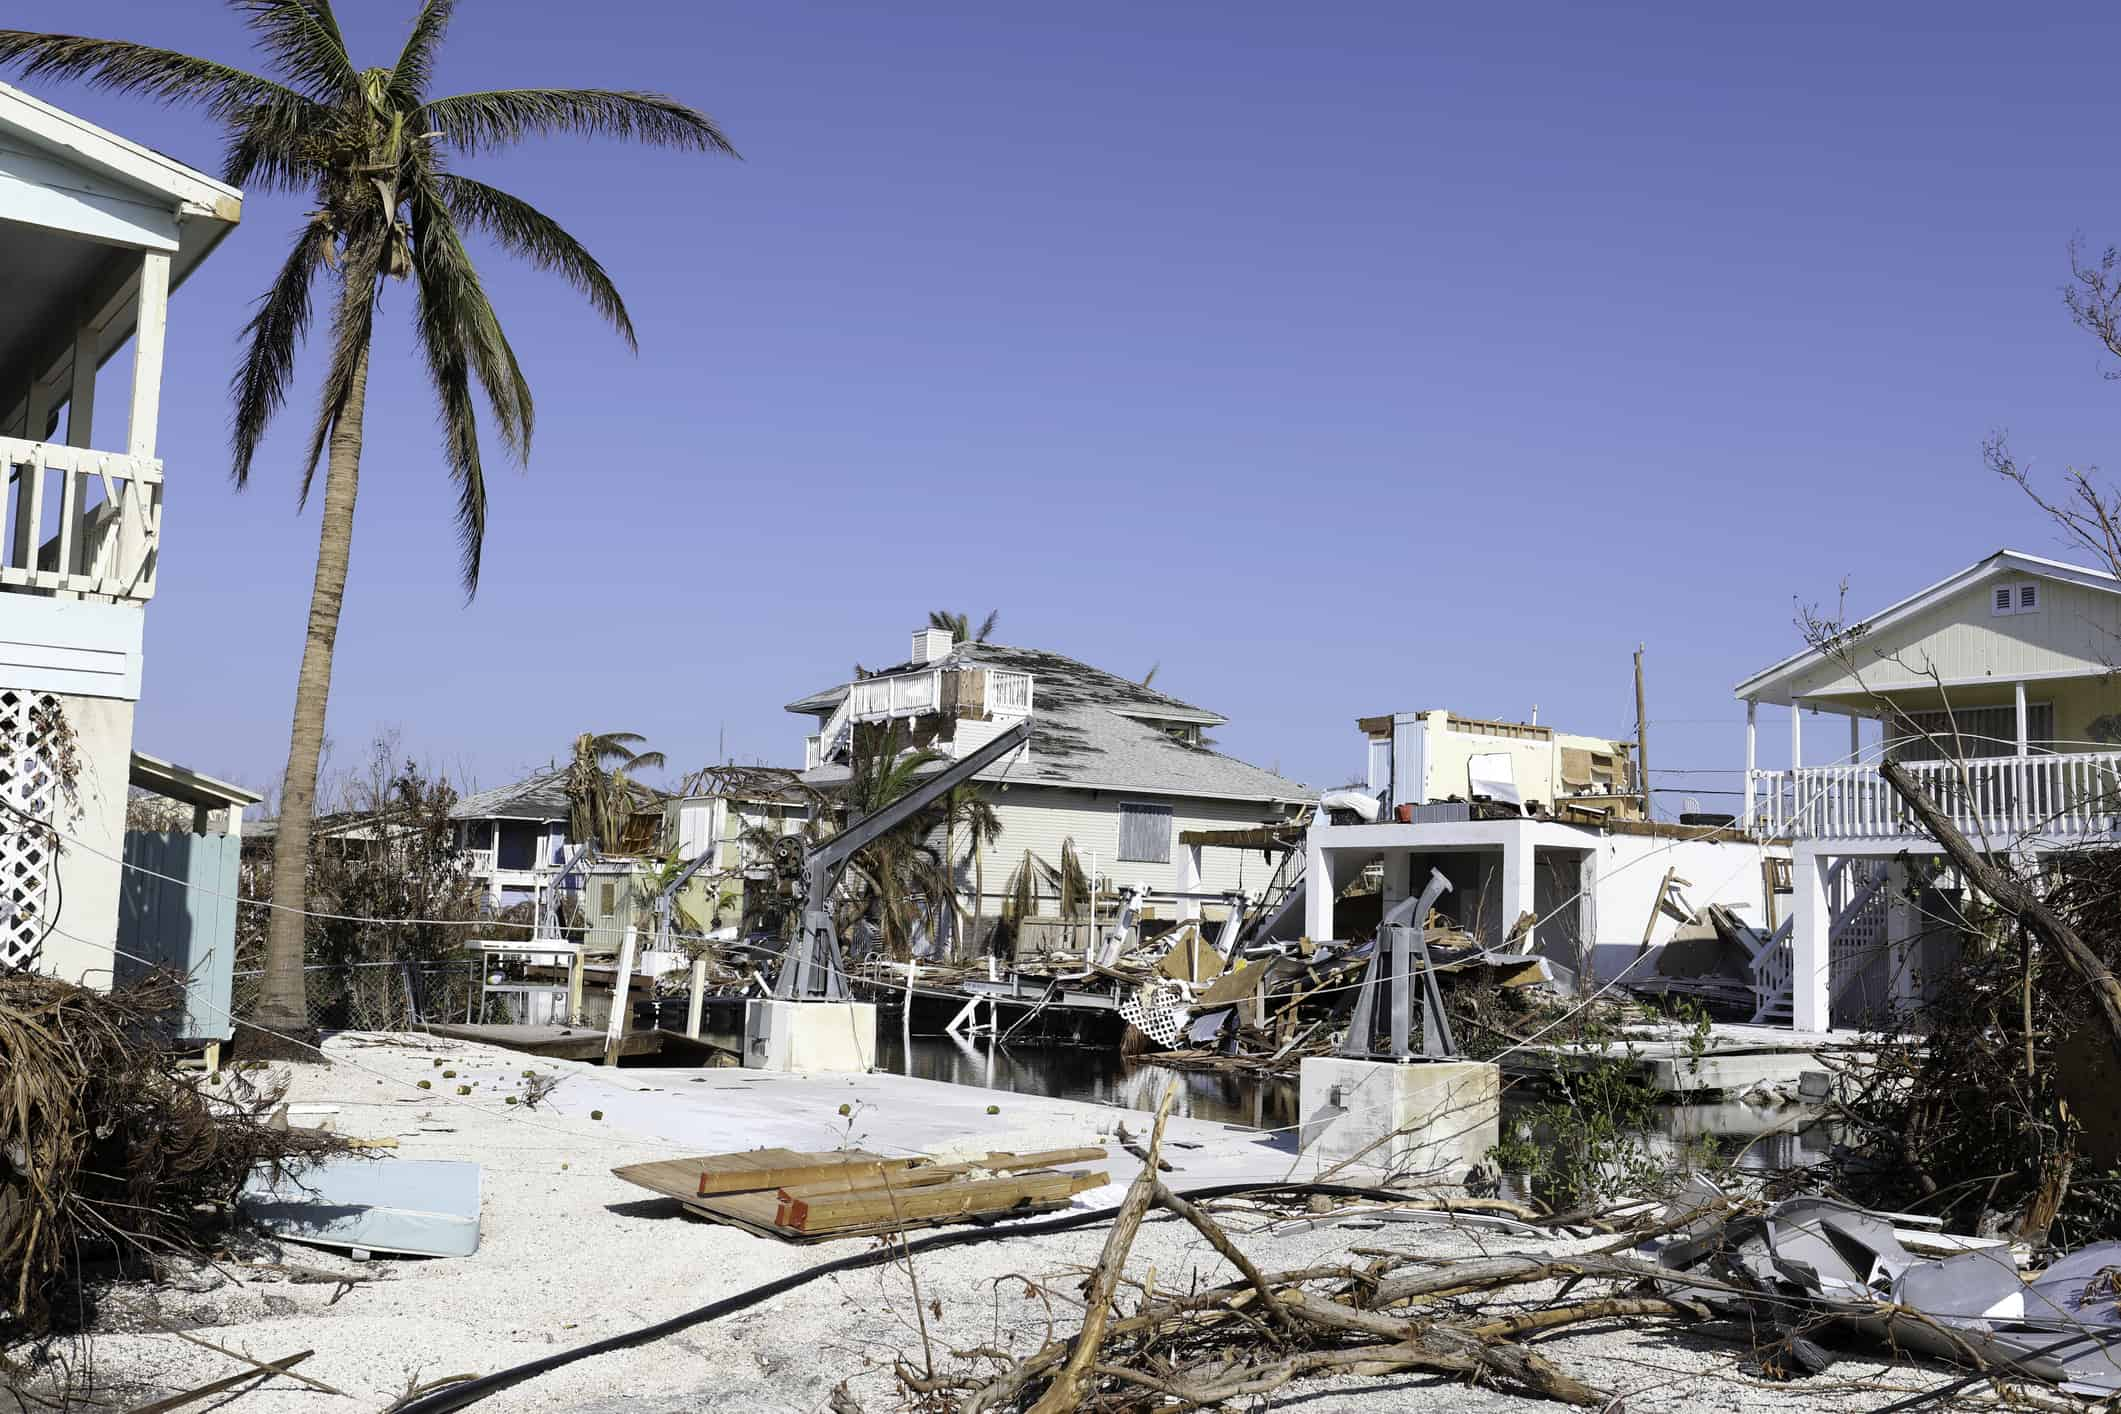 Natural disasters cost the U.S. a record-high last year. Yet many Americans aren't prepared for the next one. Photographed damage from Hurricane Irma in Ramrod Key in the Florida Keys.